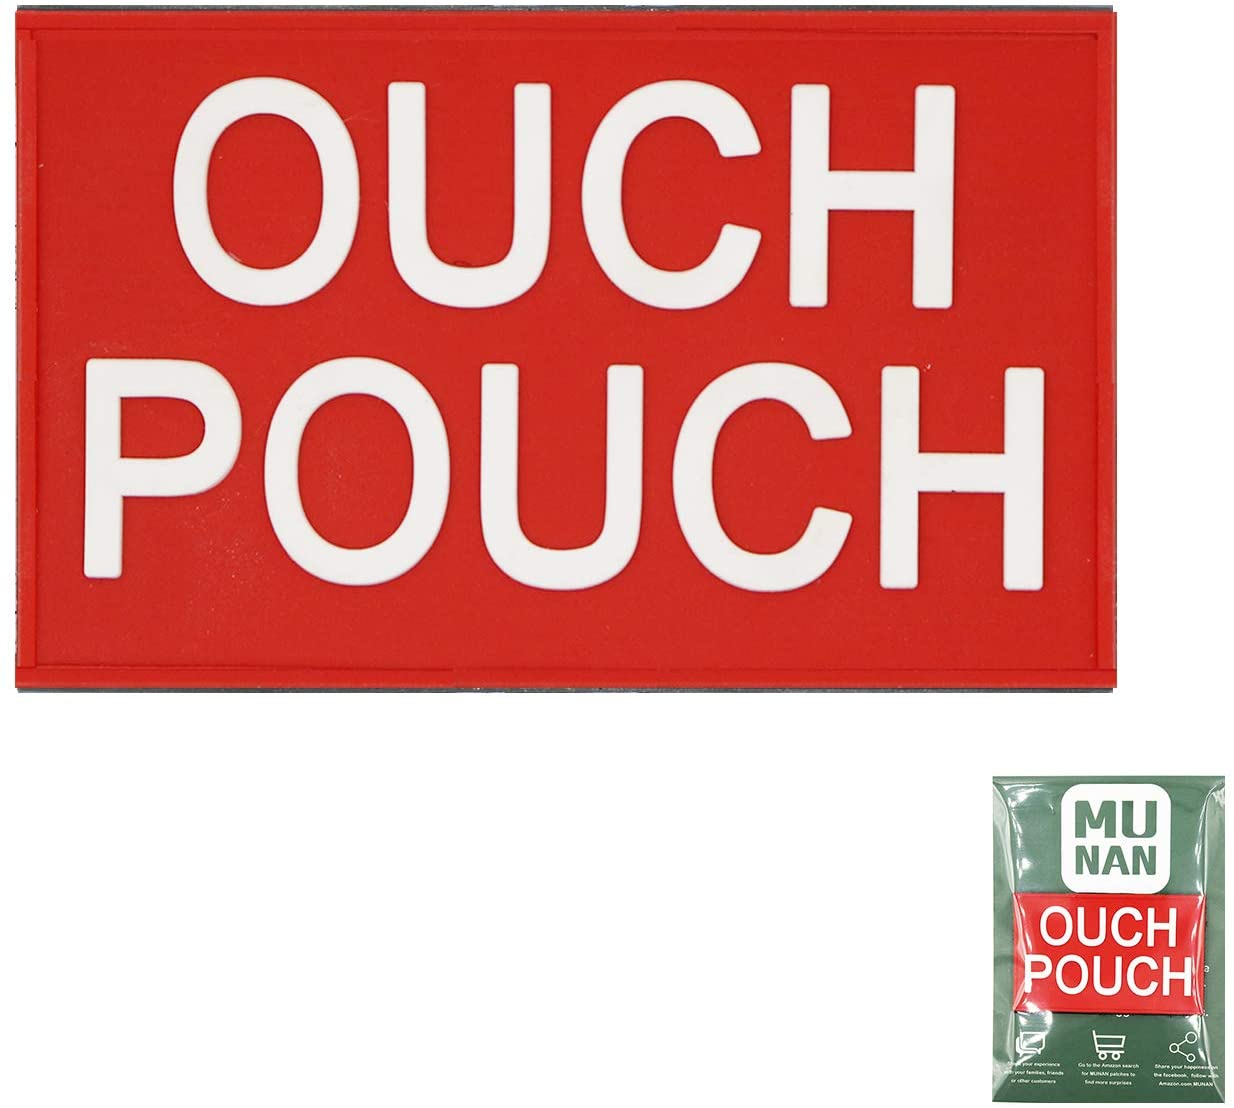 Ouch Pouch Tactical PVC Patch Ouch Pouch Badge Sew On Patches Hook-Back Adhesion(Red)